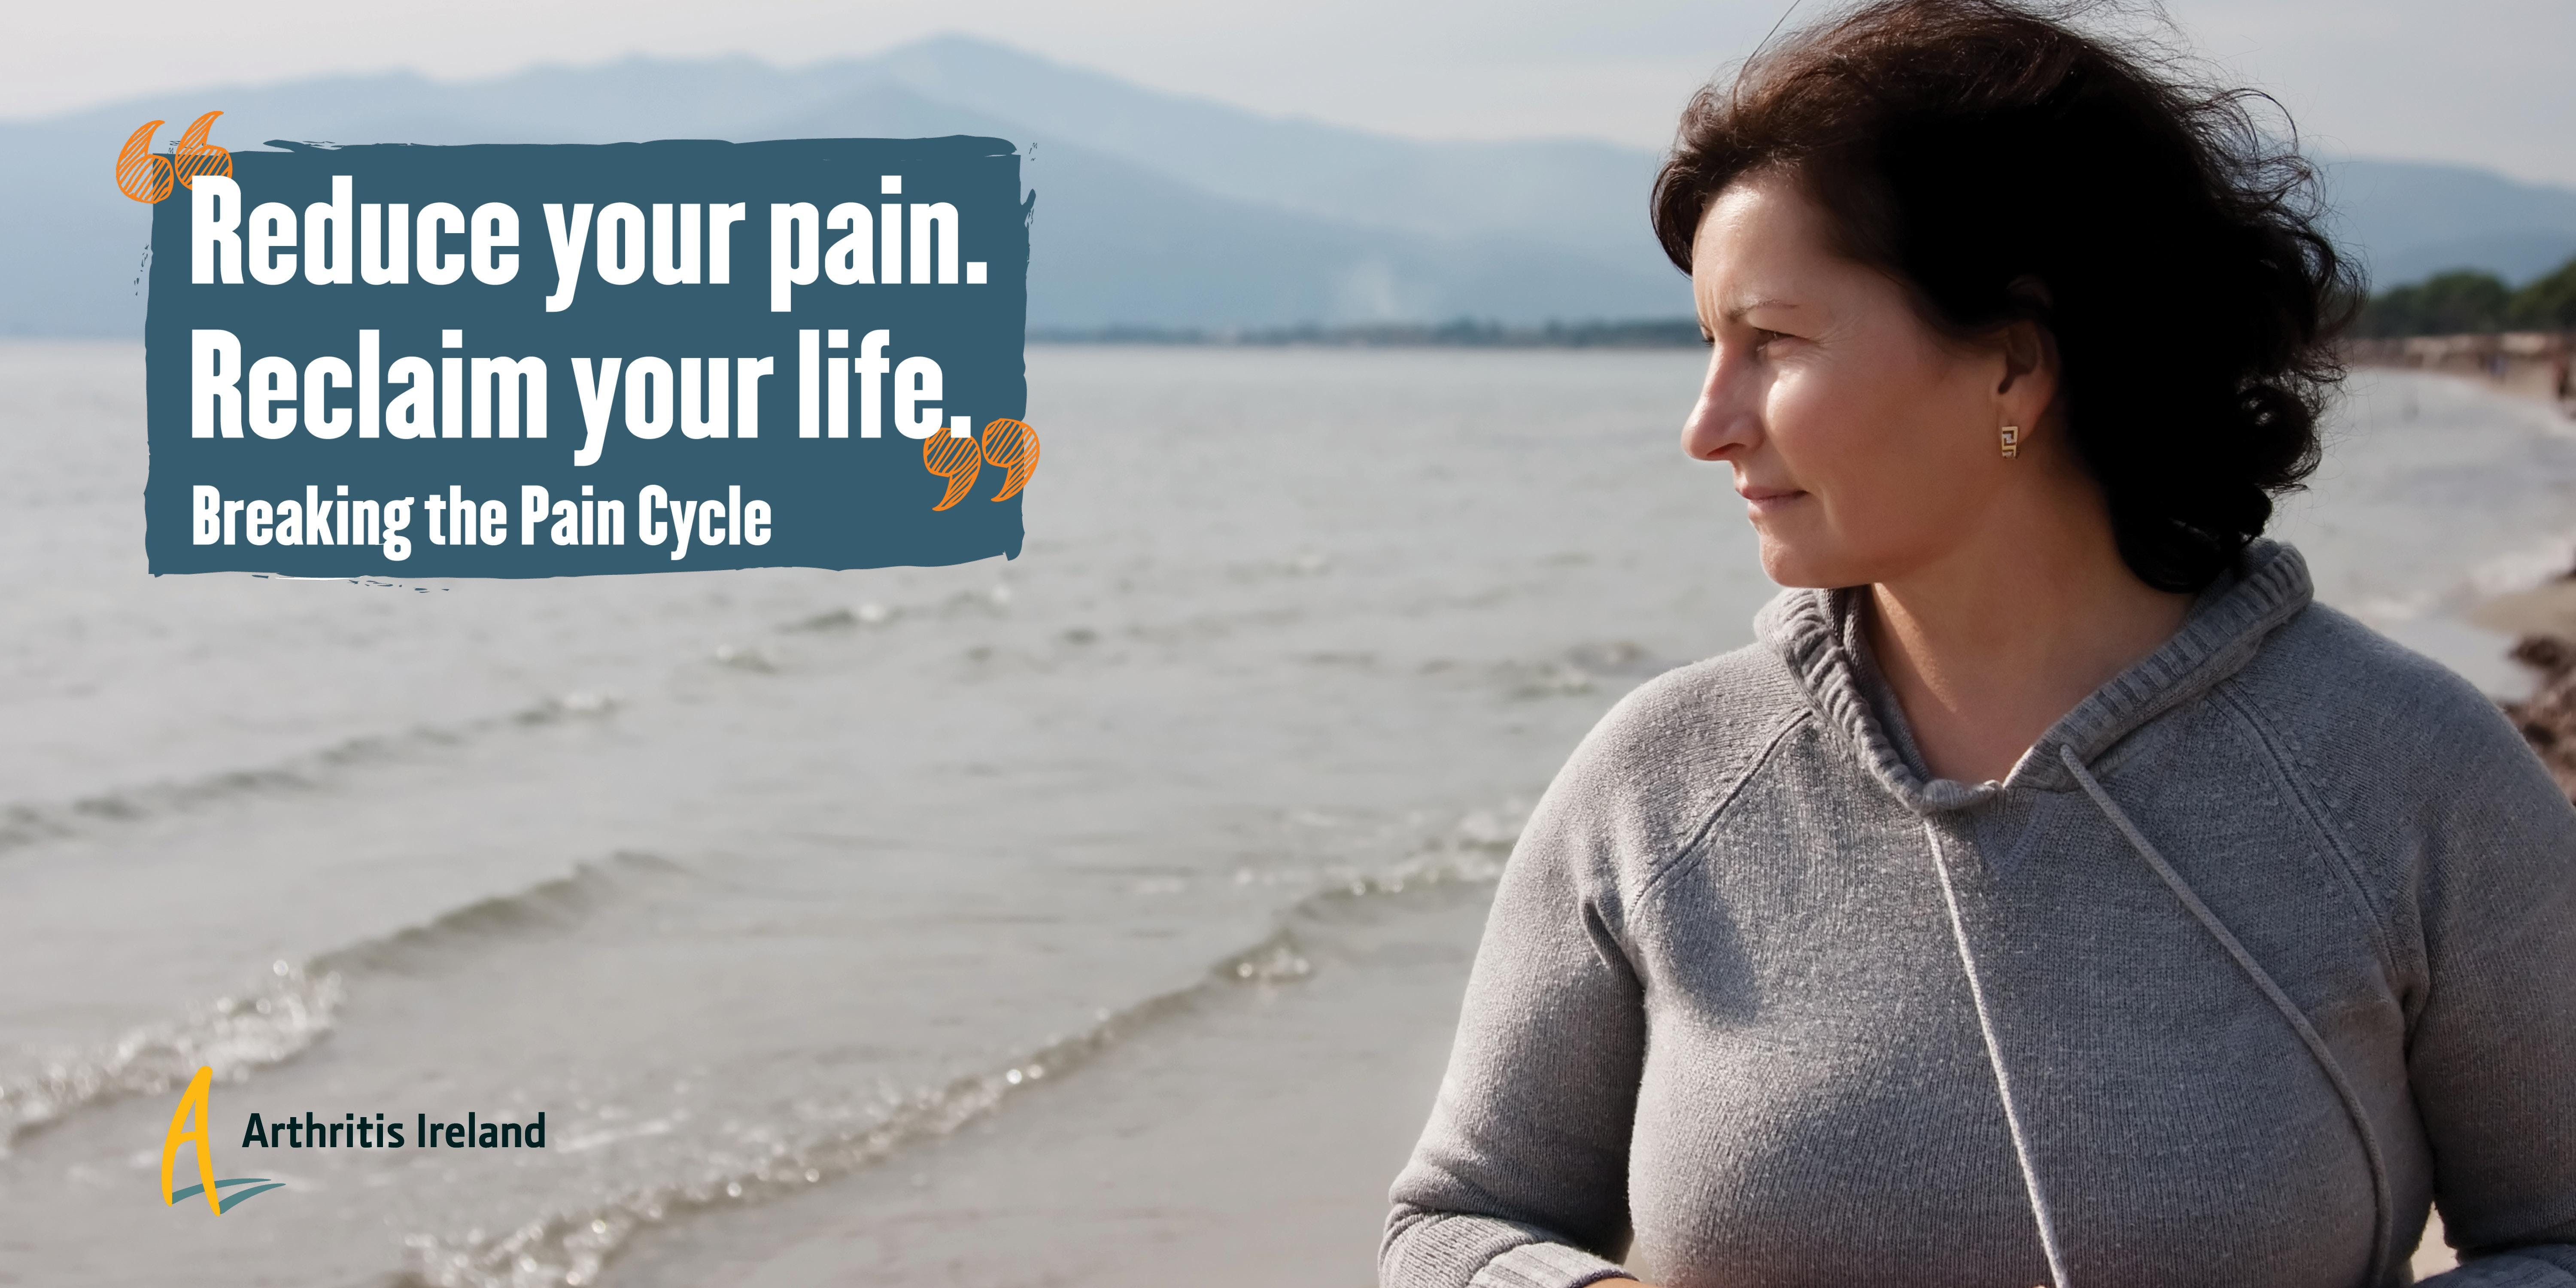 Breaking the Pain Cycle workshop, Dungloe Co. Donegal